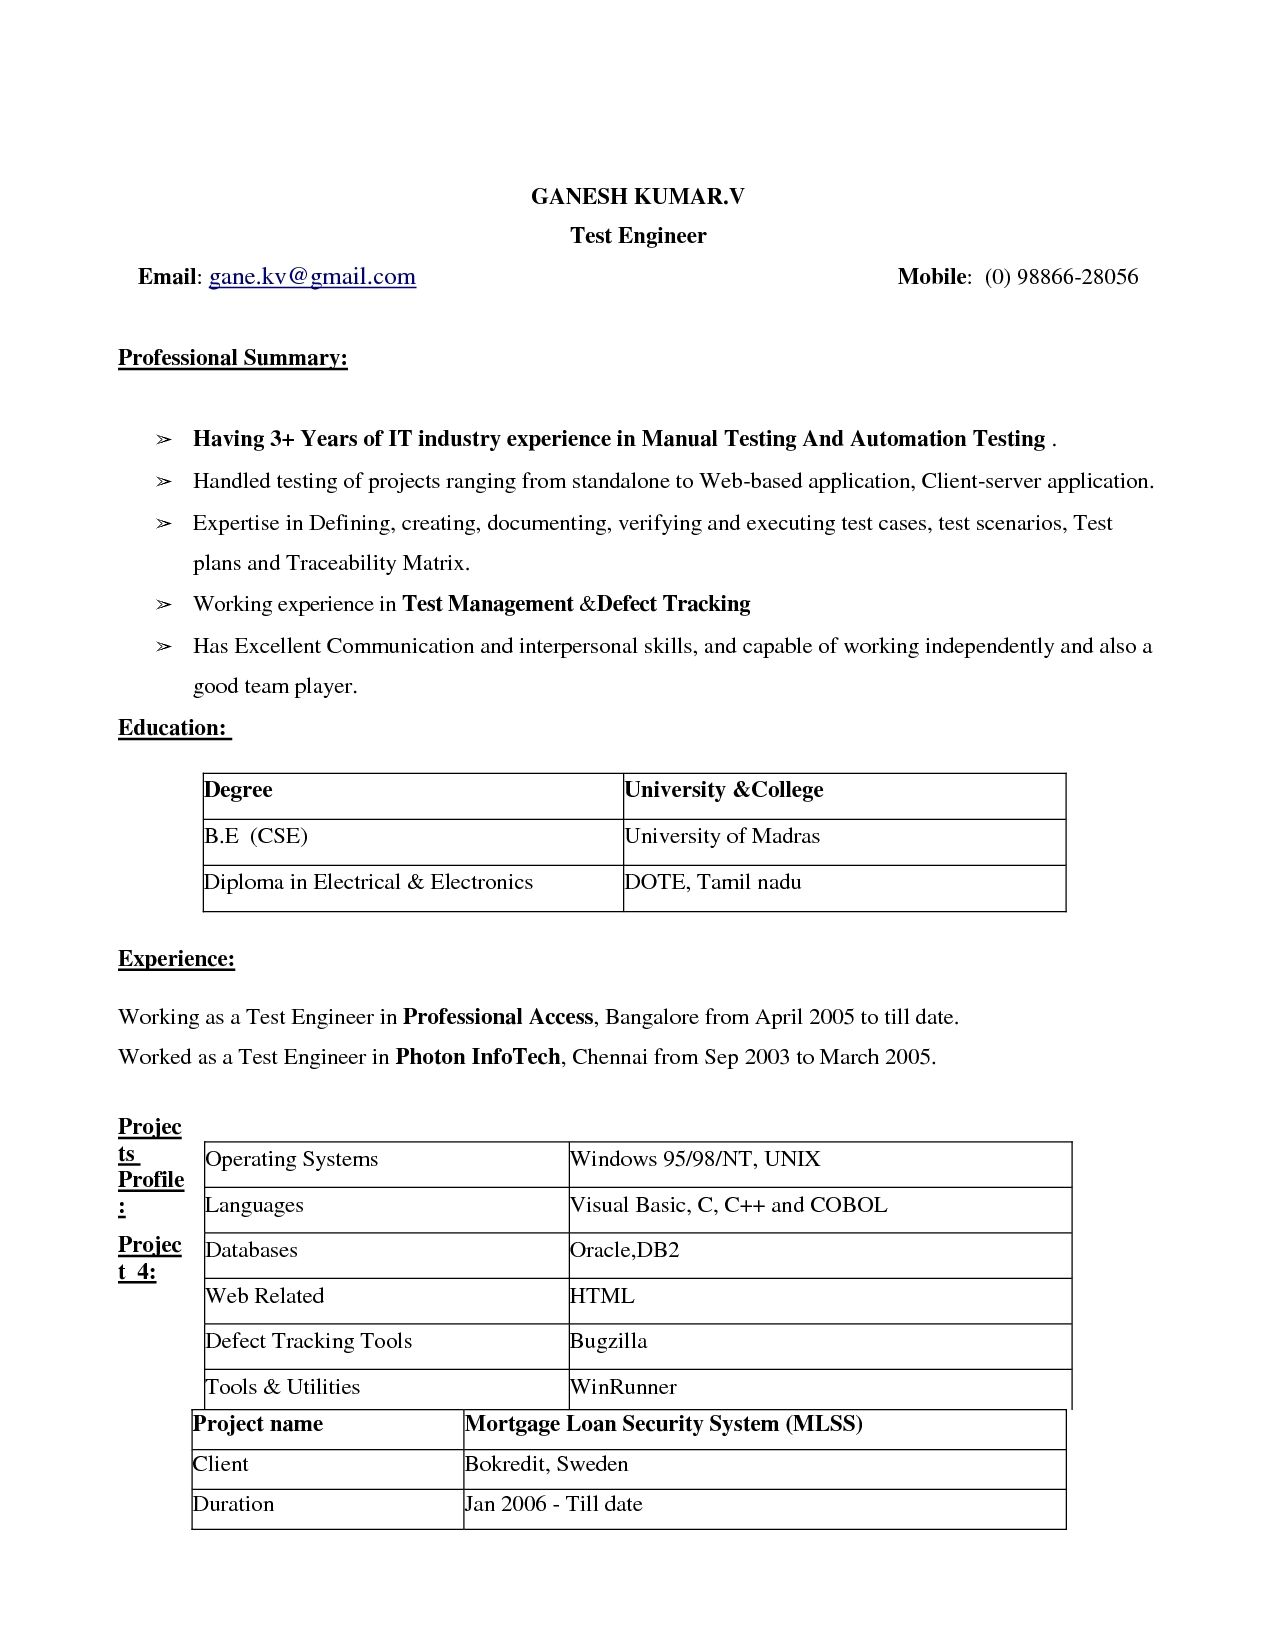 Resume Template For Microsoft Word 2010 Resume Formats In Ms Word 9021Eaaae Best Ms Word Resume Format